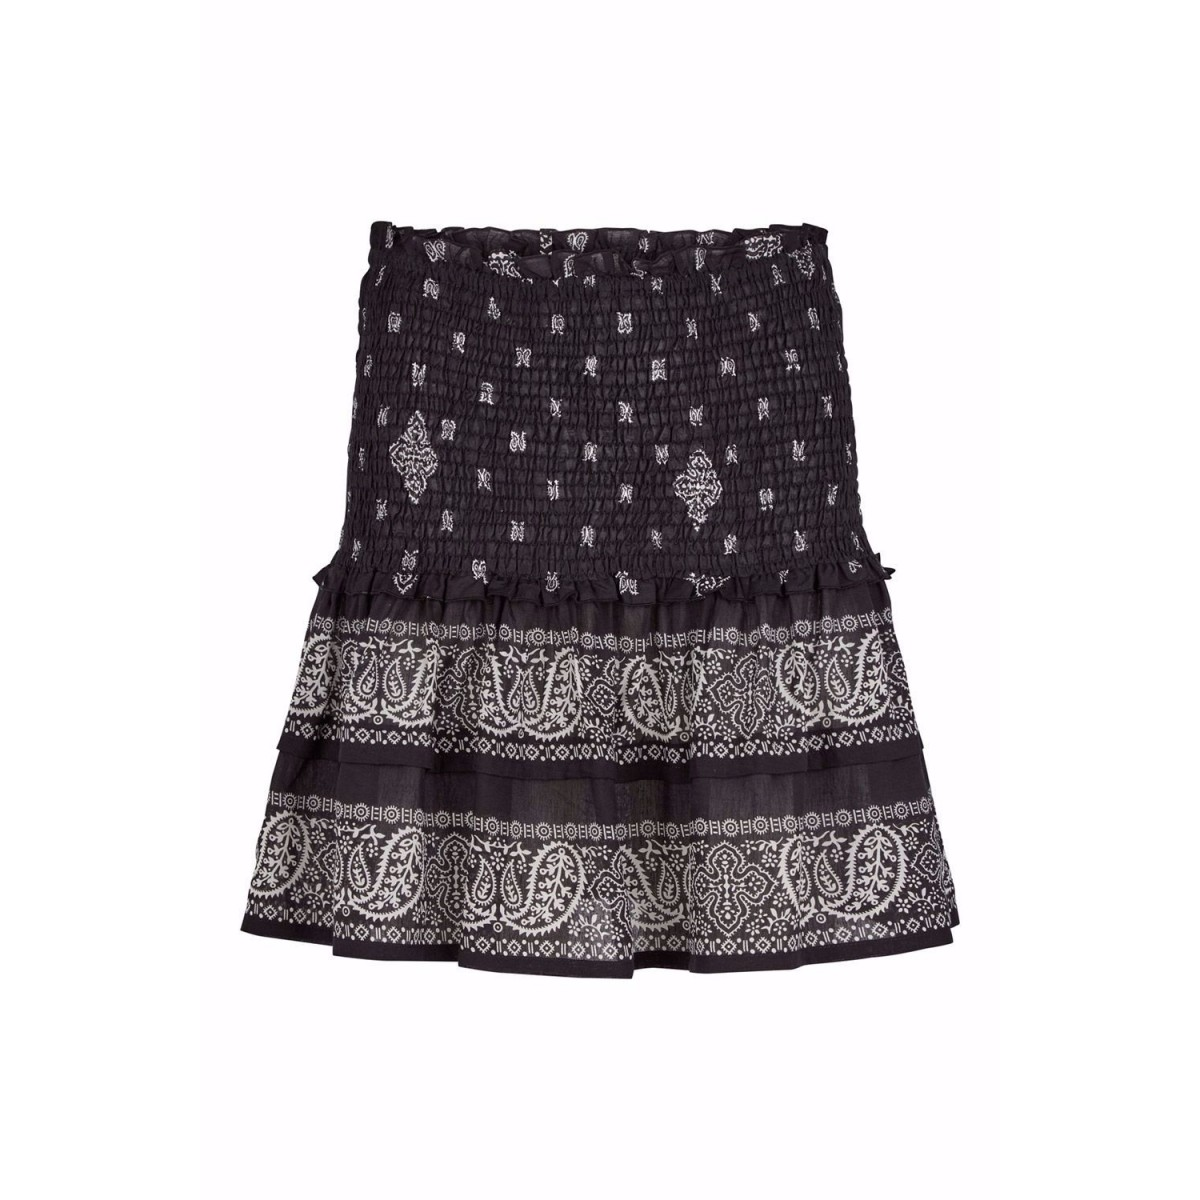 Moliin 5029 Puk Skirt Black / White-30